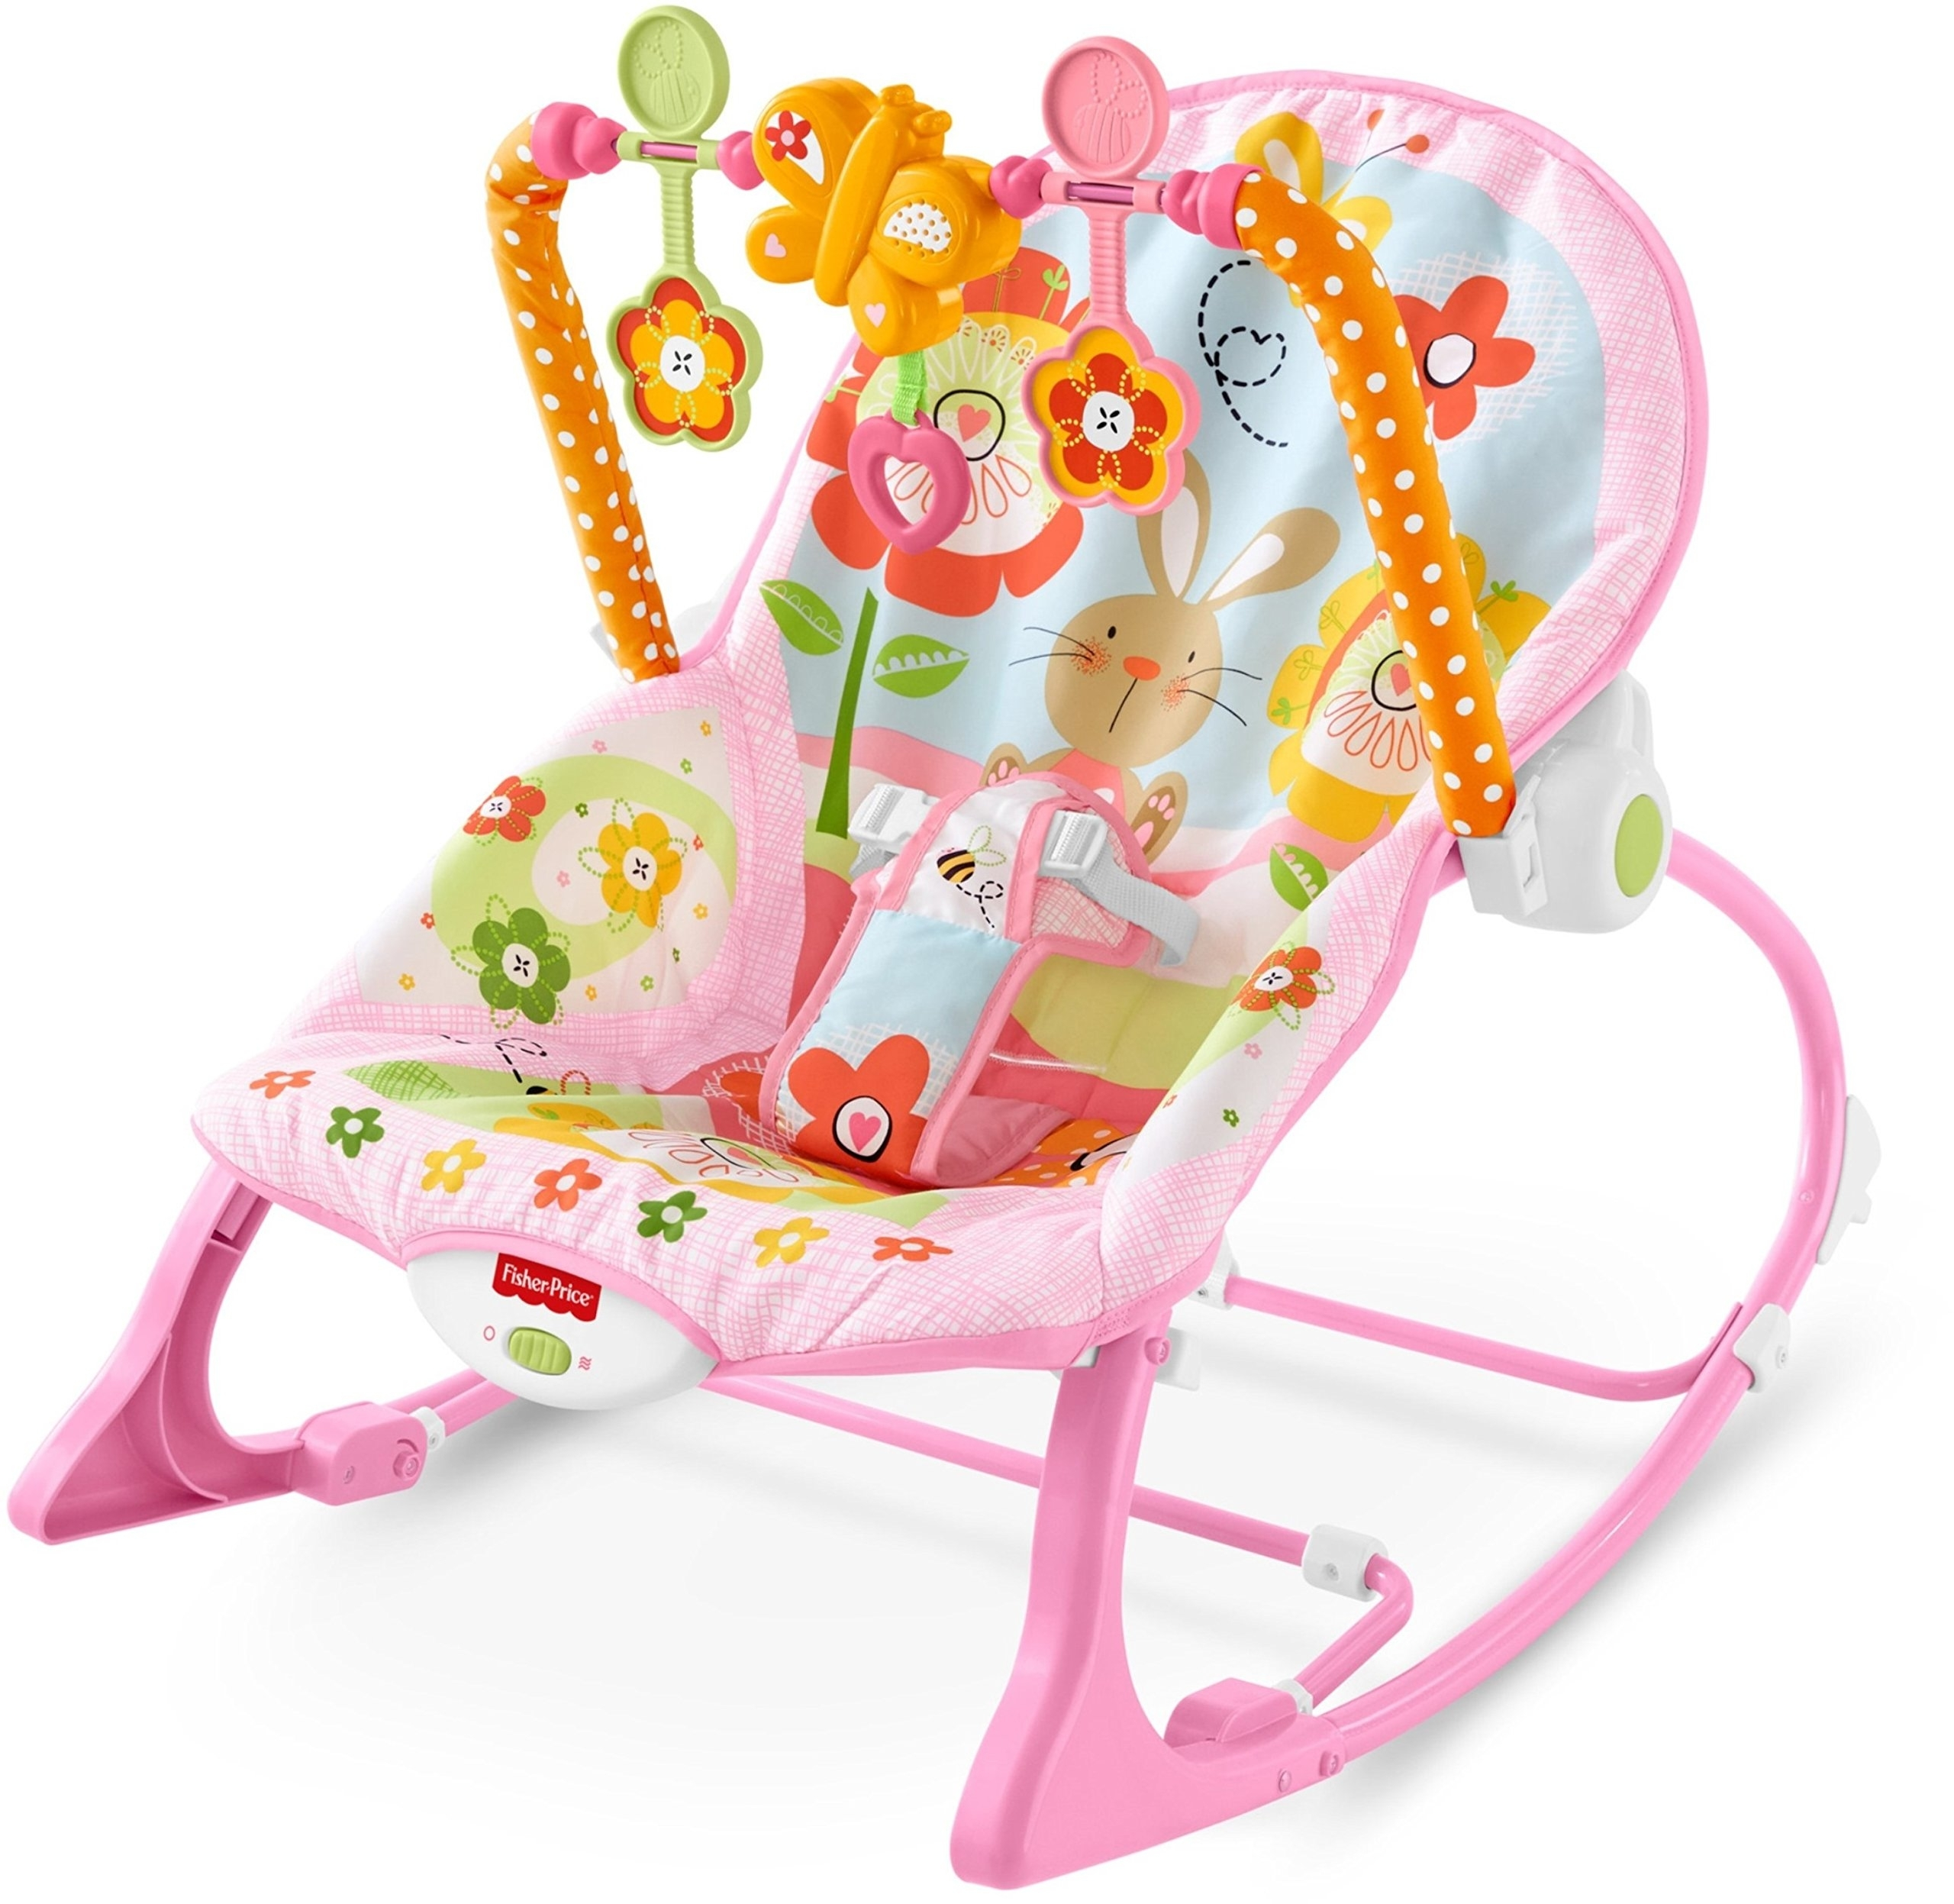 Chair | Glider Rocker And Ottoman Set Rocking Chair For Mom And Baby Pertaining To Rocking Chairs For Babies (#5 of 15)